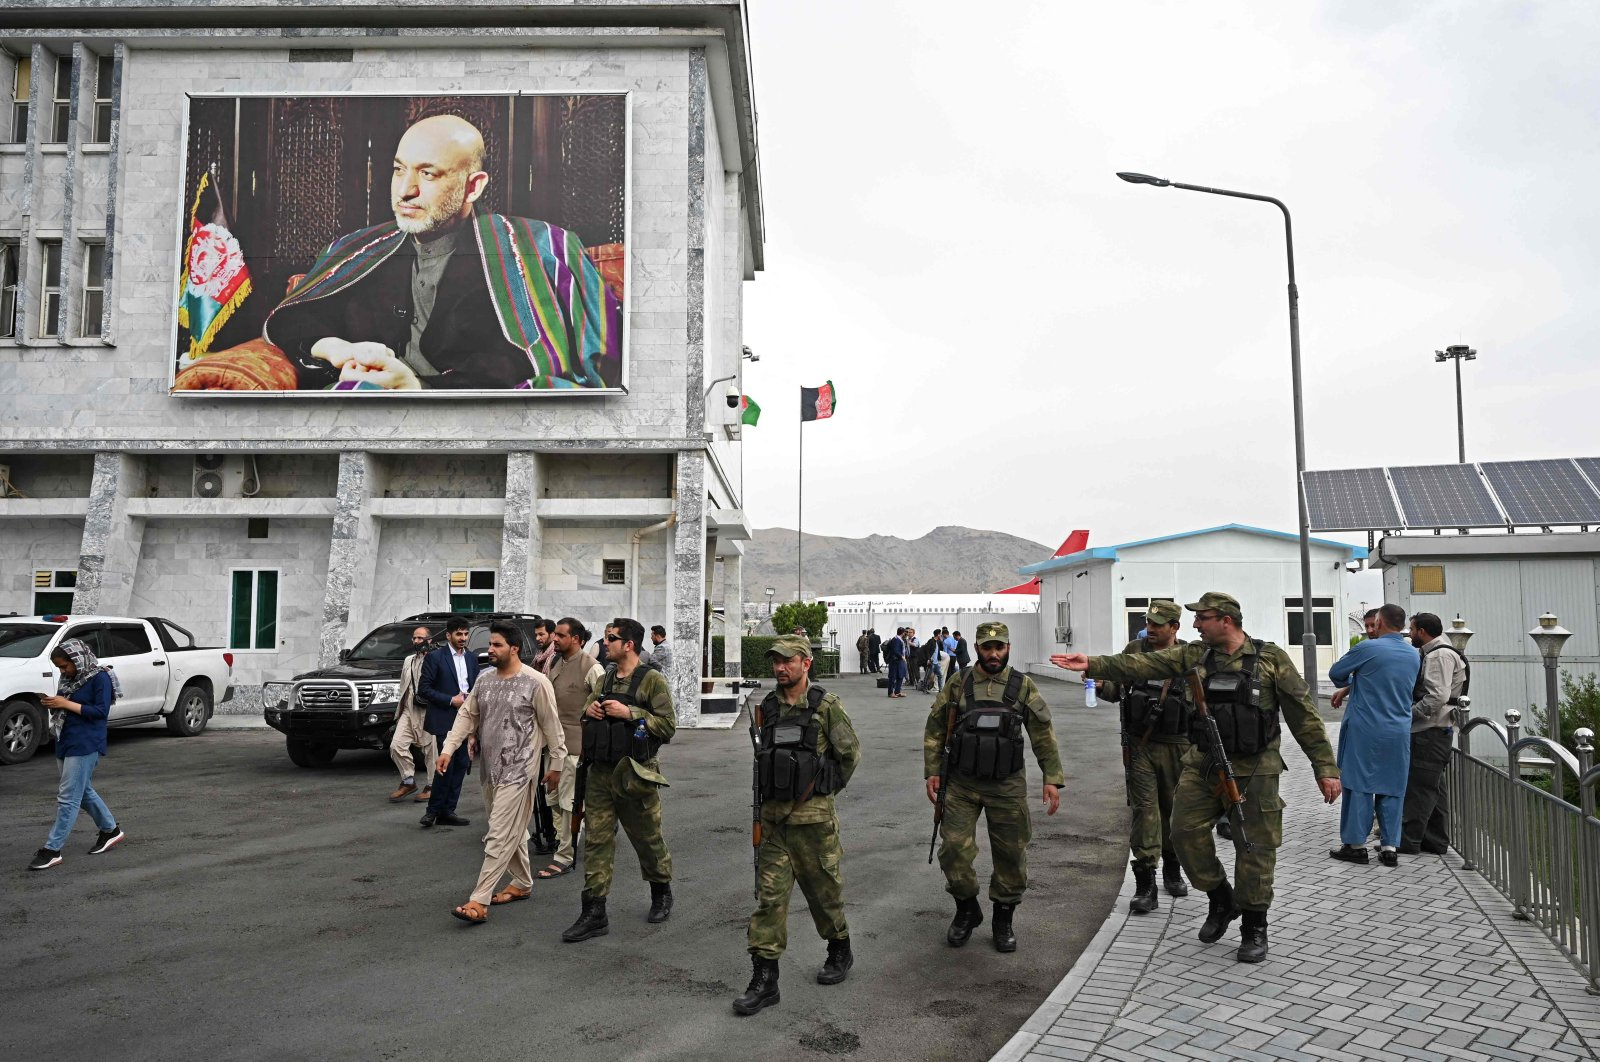 Security personnel walk past a poster of former Afghan President Hamid Karzai at the Hamid Karzai International Airport in Kabul, Afghanistan, July 16, 2021. (AFP Photo)